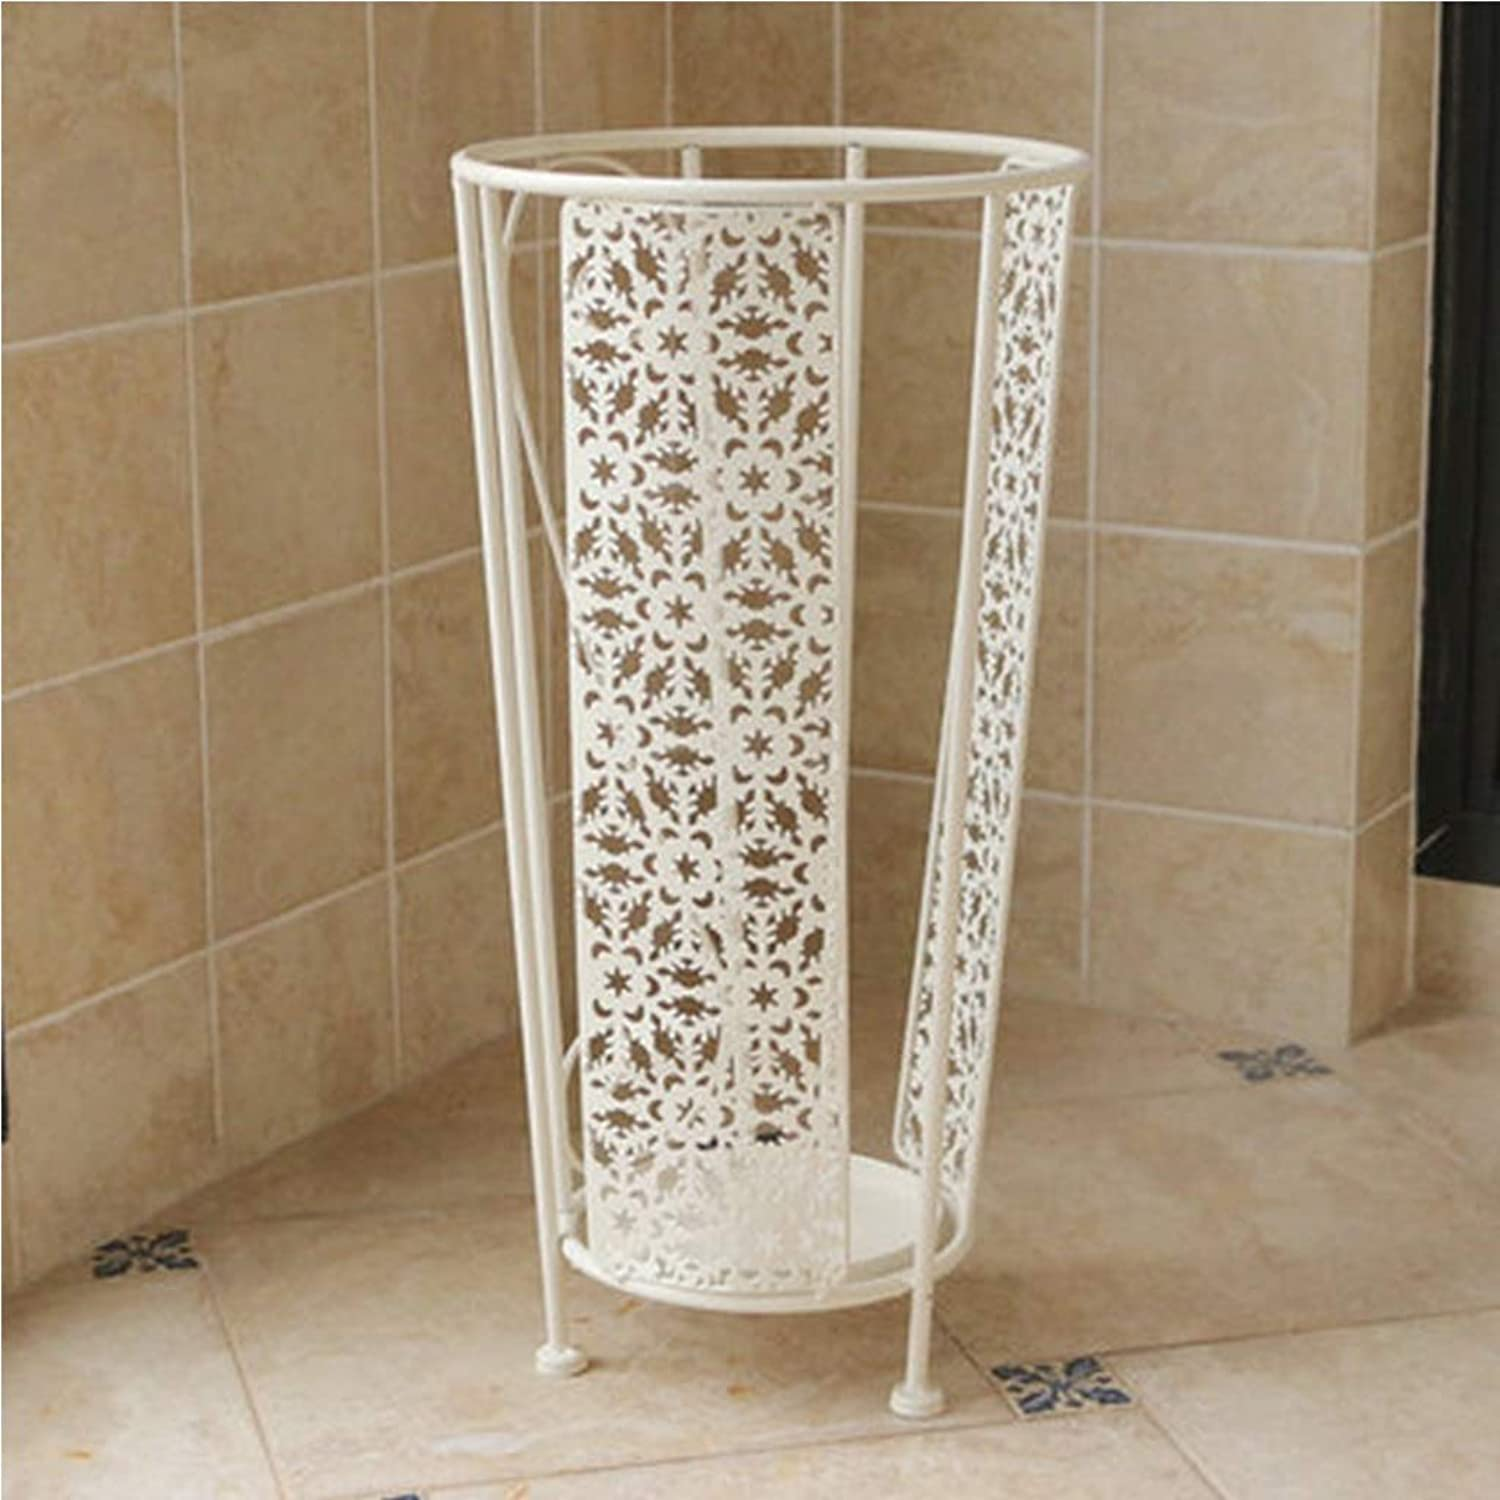 Lyqqqq Umbrella Household Iron Umbrella Stand Umbrella Barrel Hotel Lobby Rain Gear Storage Rack Creative Floor Umbrella Tube